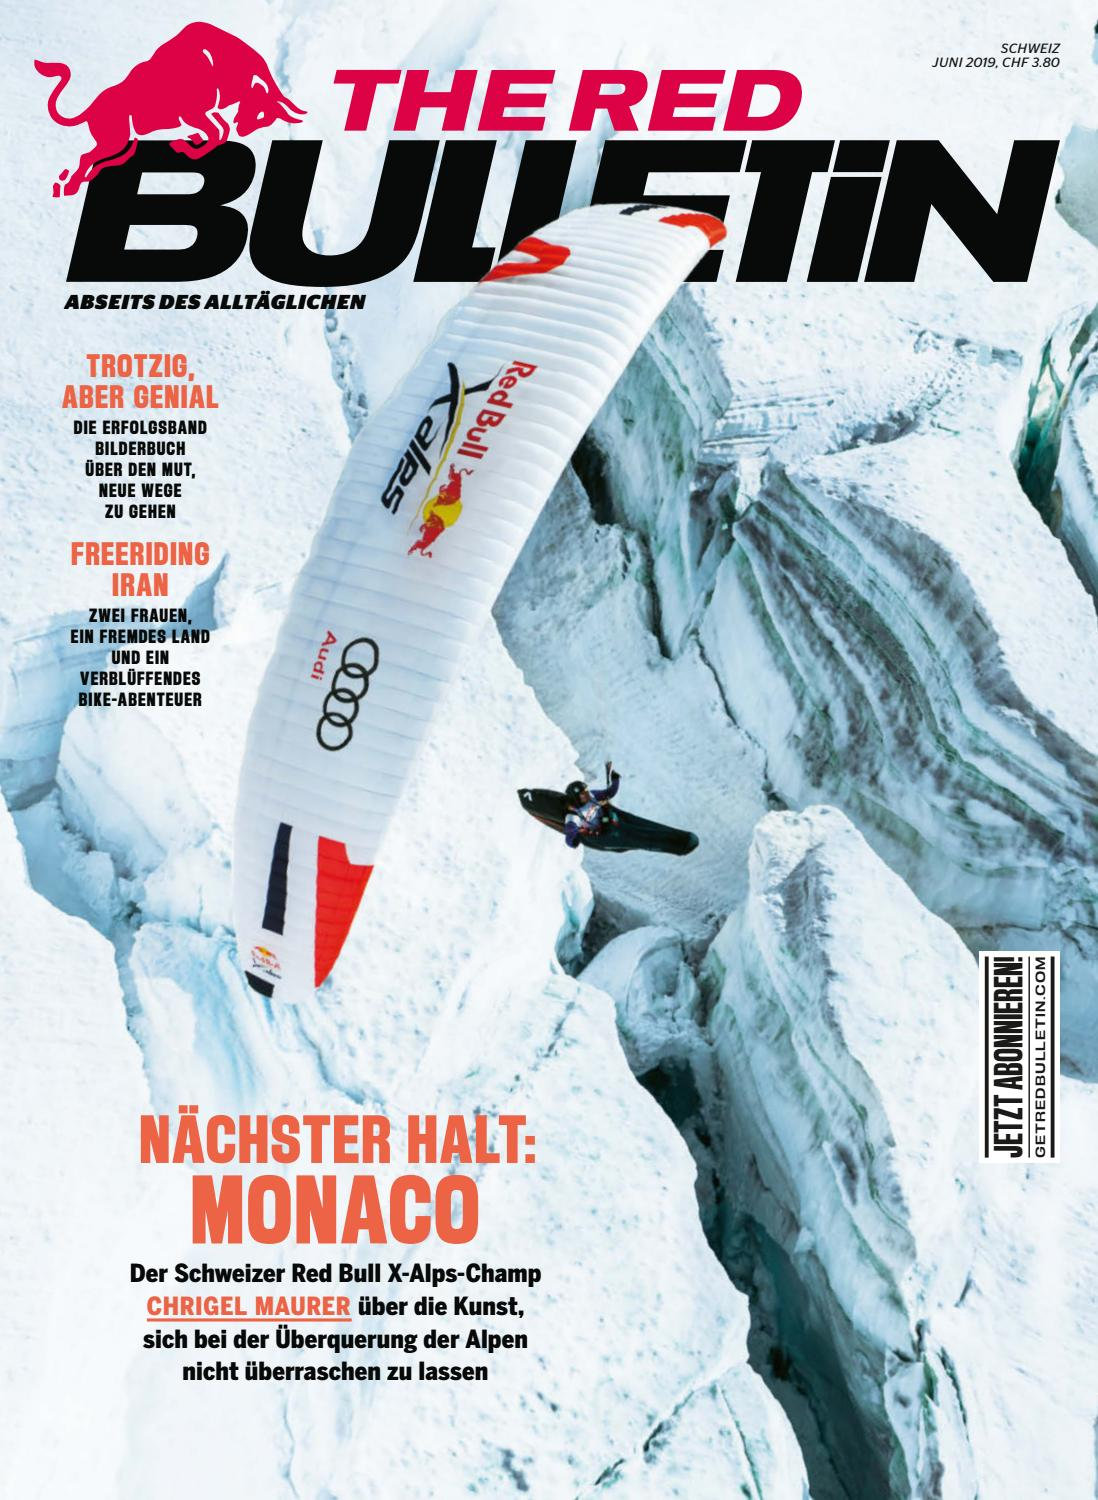 The Red Bulletin 06 19 Cd By Red Bull Media House Issuu